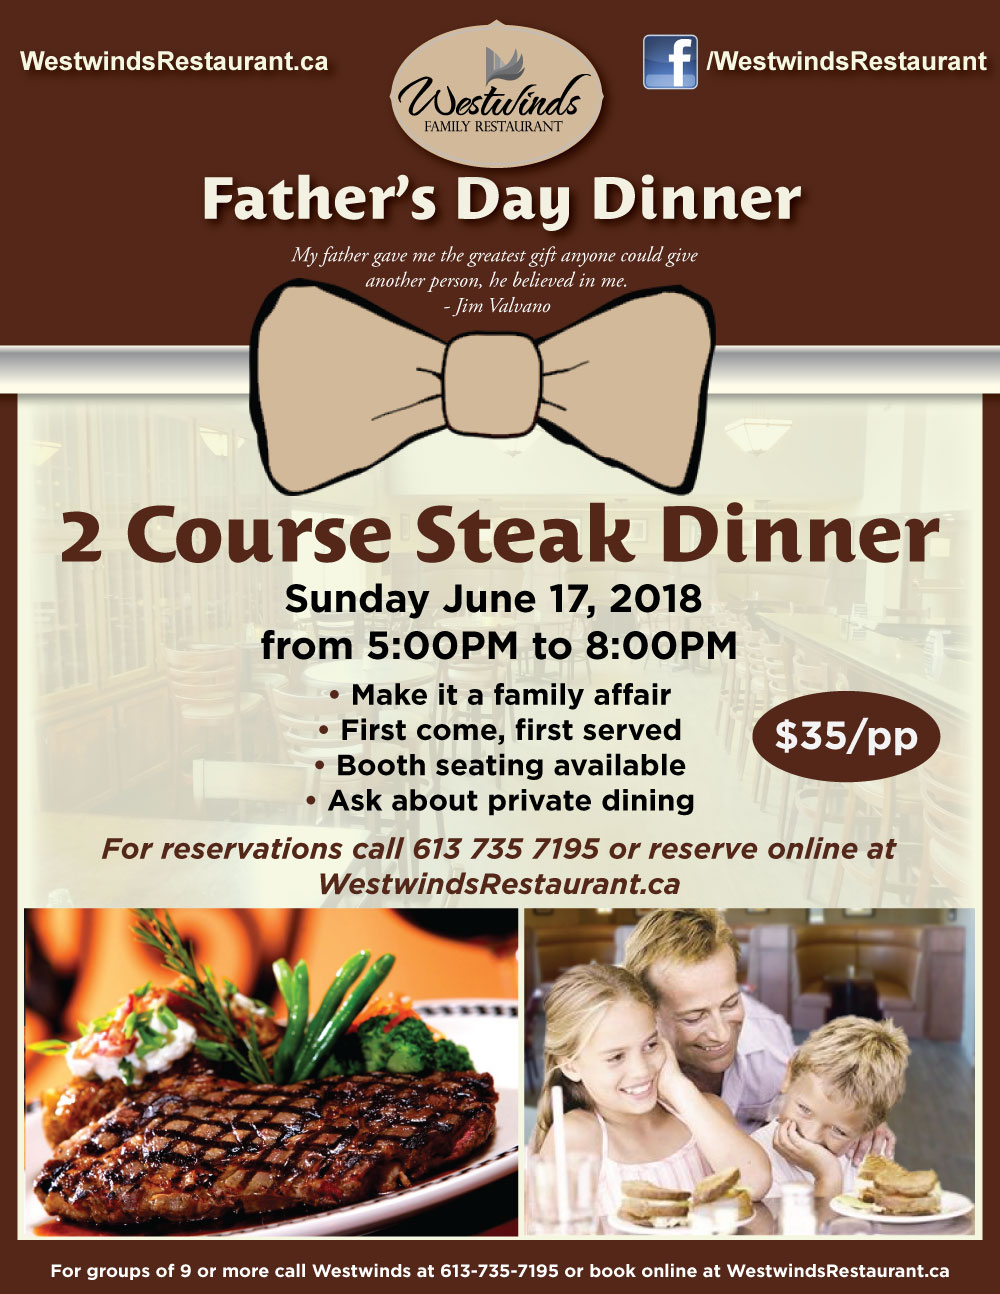 Father's Day 2018: Treat Dad to a 2 Course Steak Dinner [Expired]